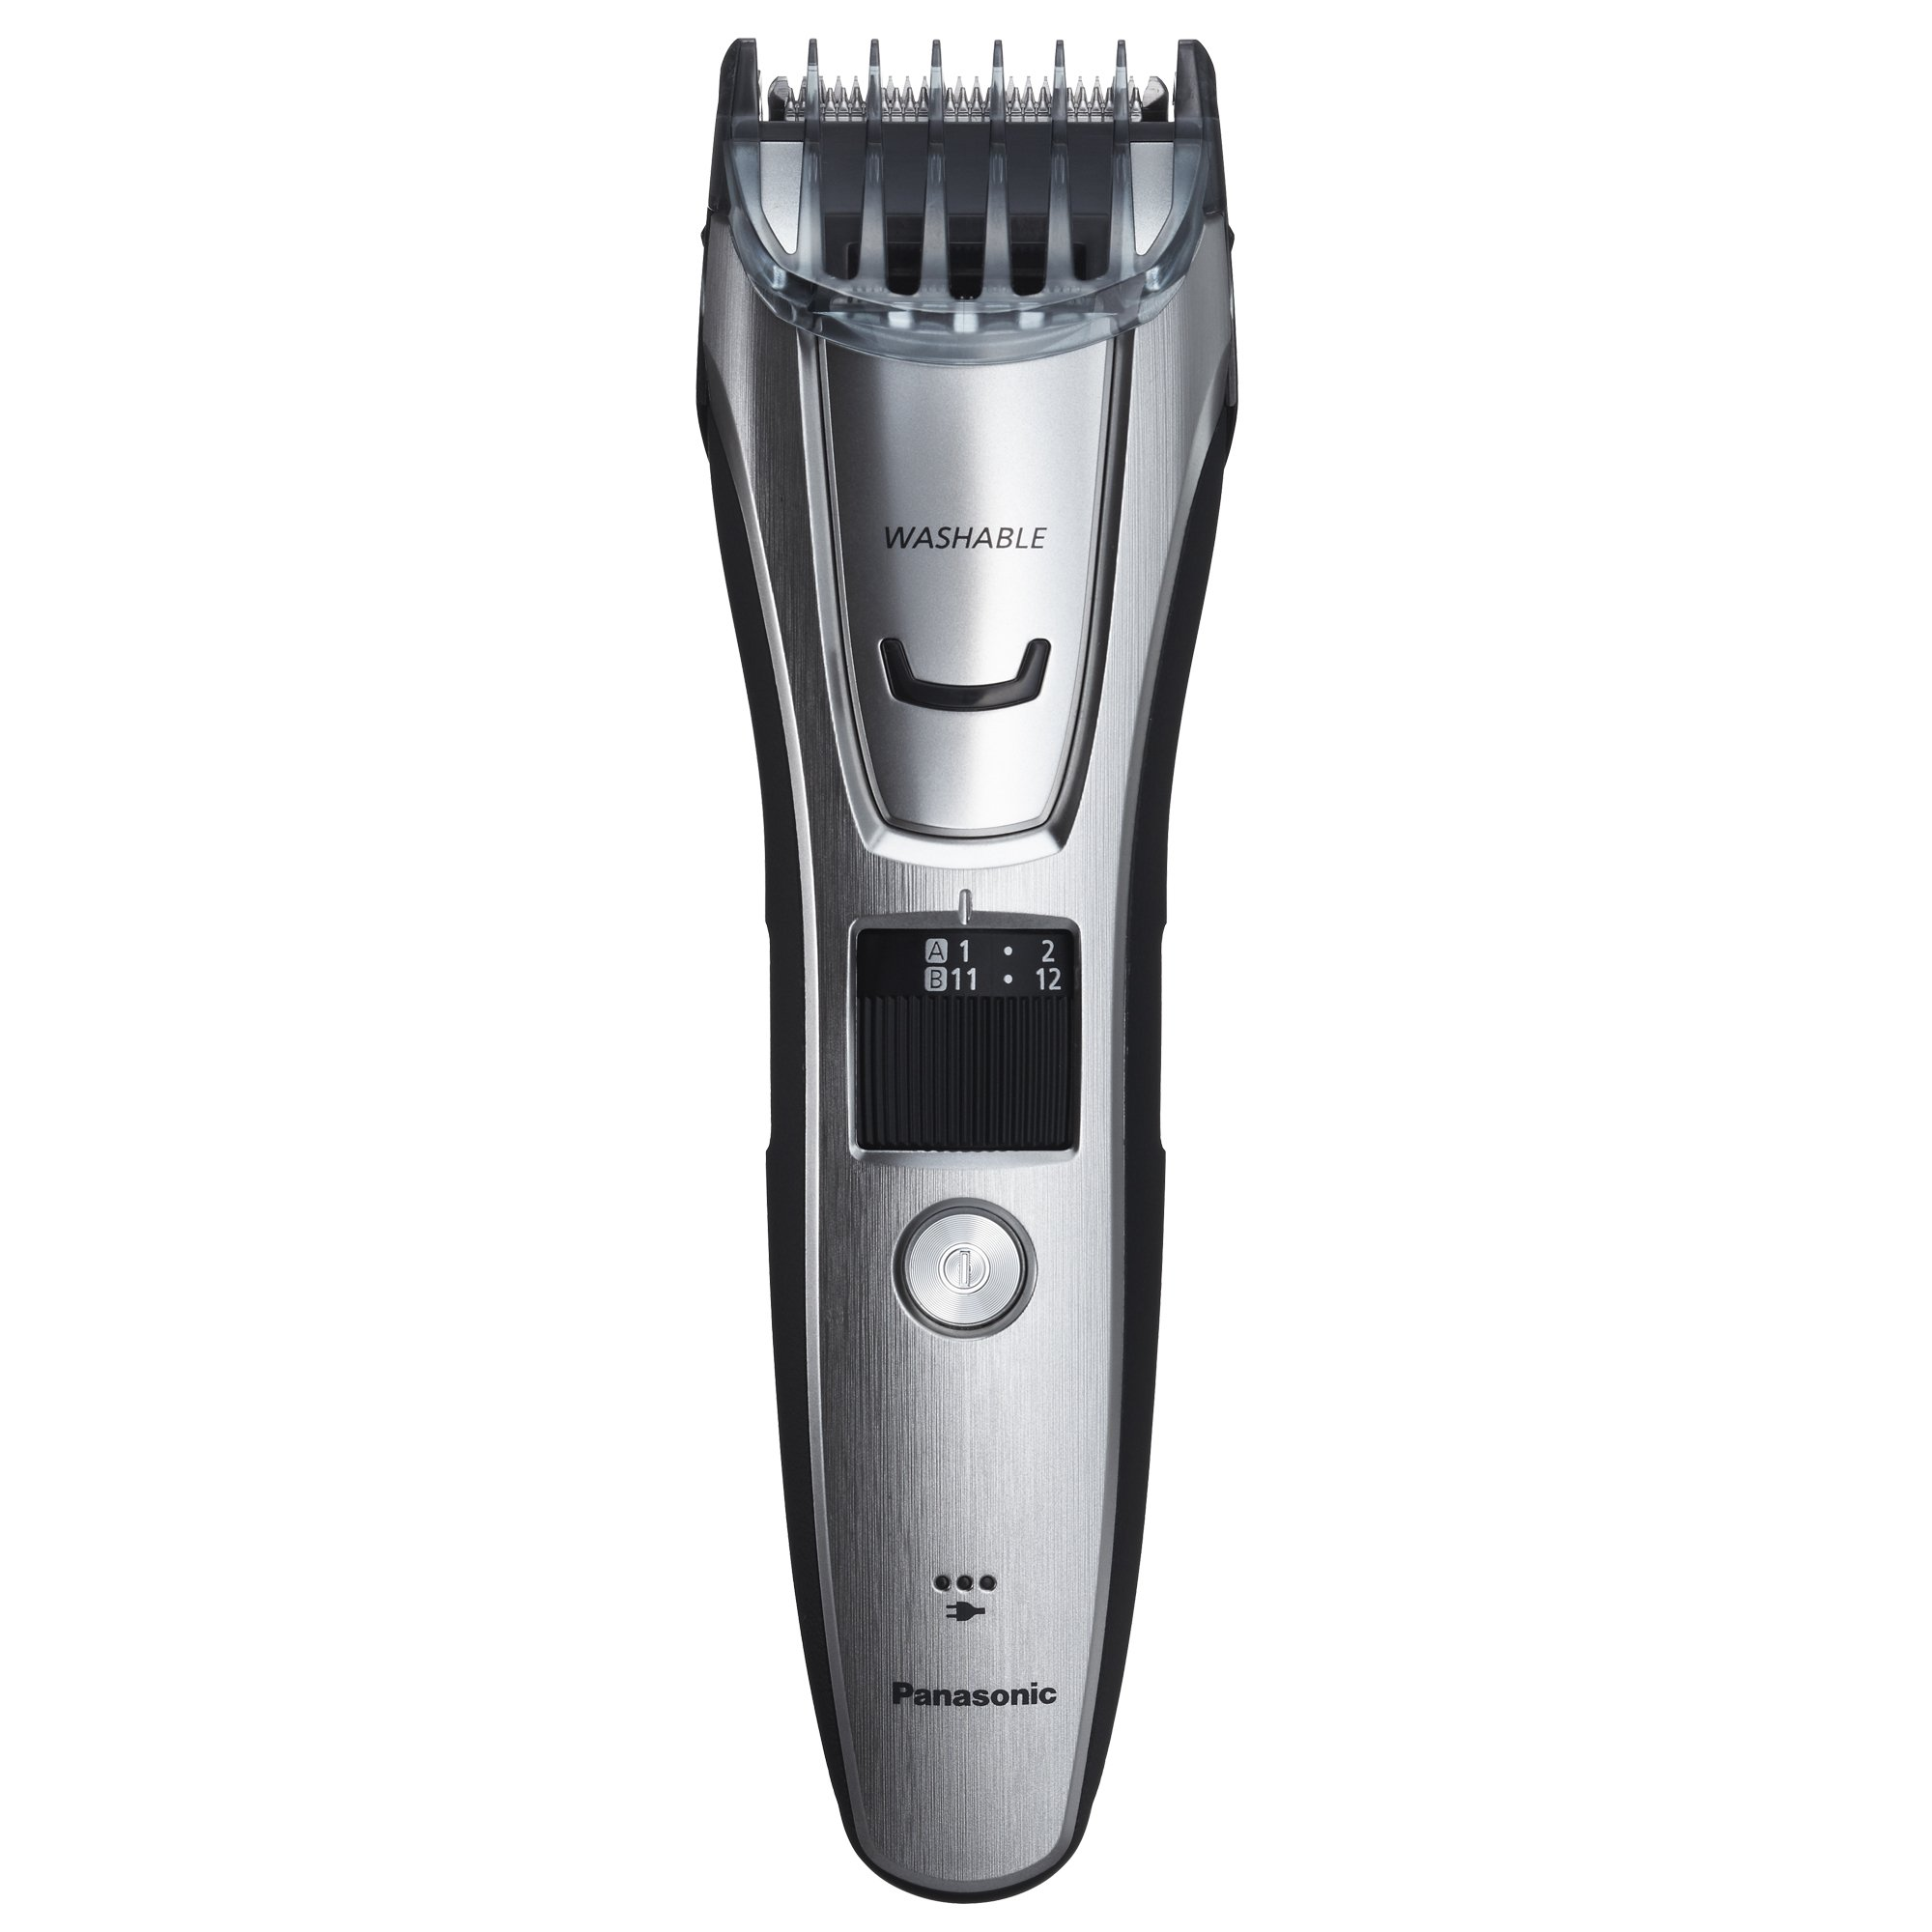 Panasonic ER-GB80-S Body and Beard Trimmer, Hair Clipper, Men's, Cordless/Corded Operation with 3 Comb Attachments and 39 Adjustable Trim Settings, Washable by Panasonic (Image #4)